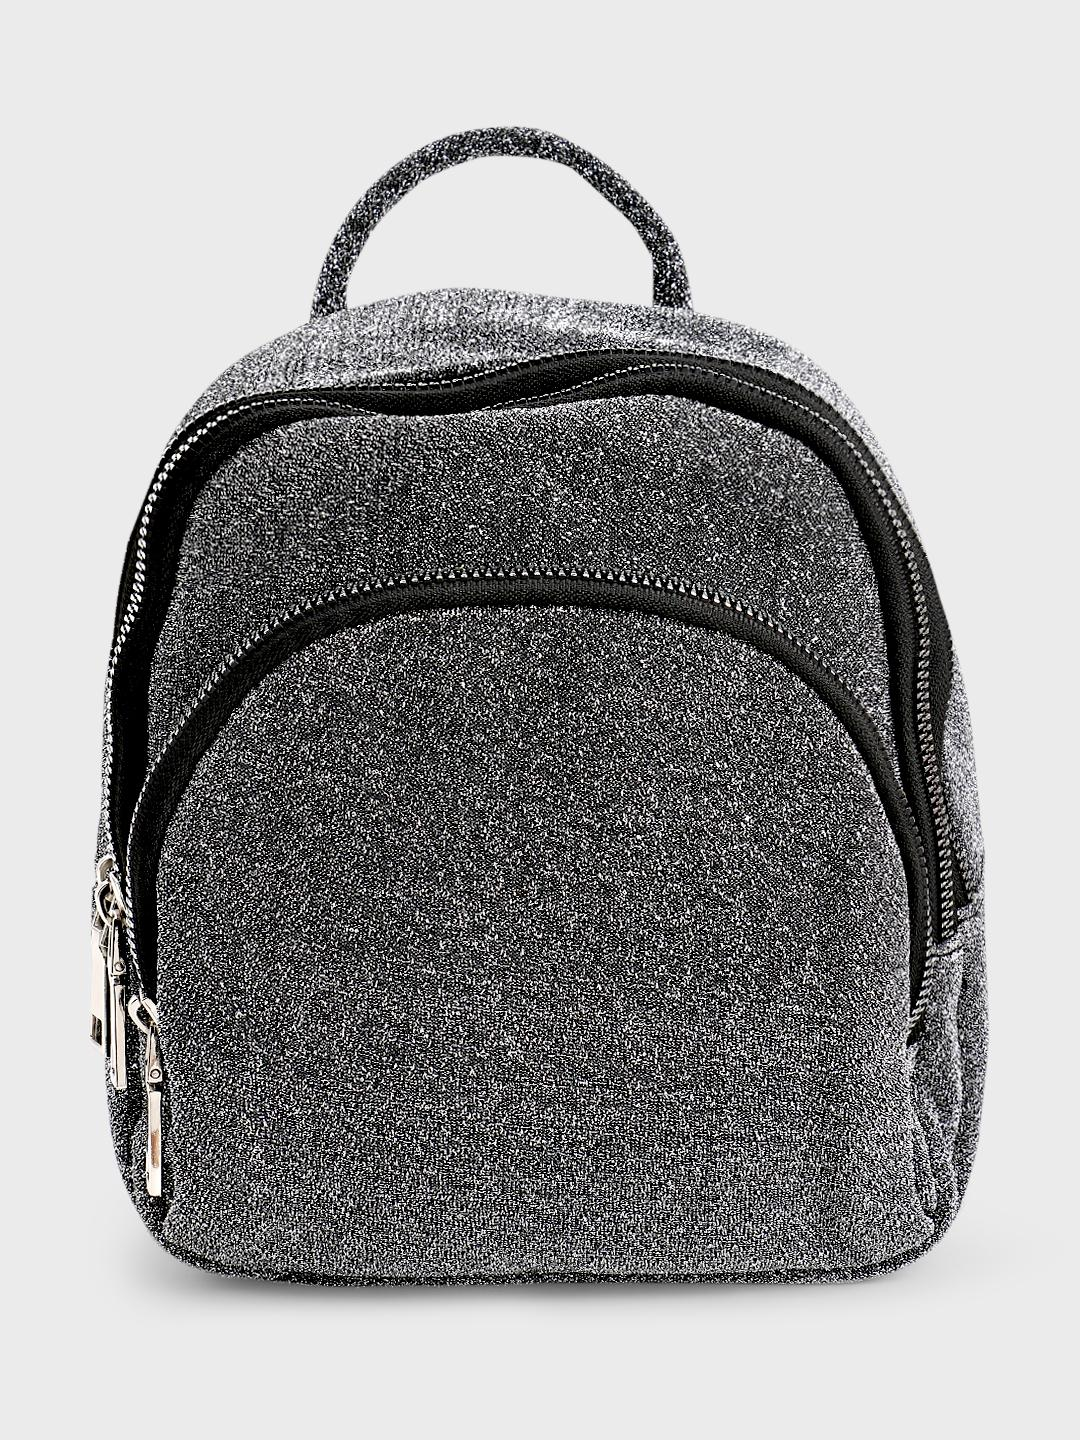 Origami Lily Silver Metallic Glitter Backpack 1